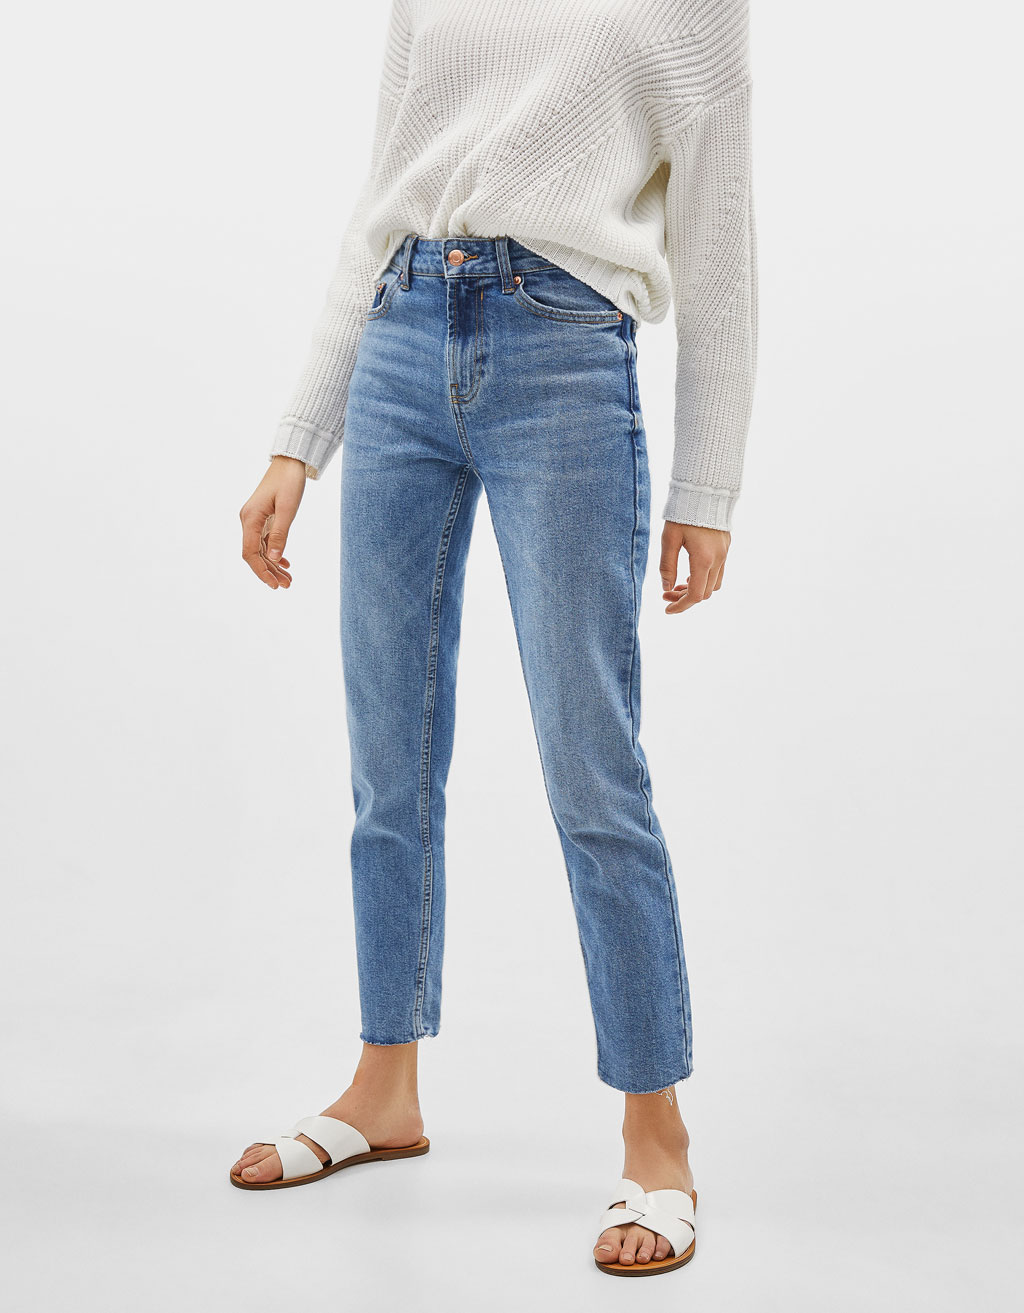 Straight cropped mid waist jeans